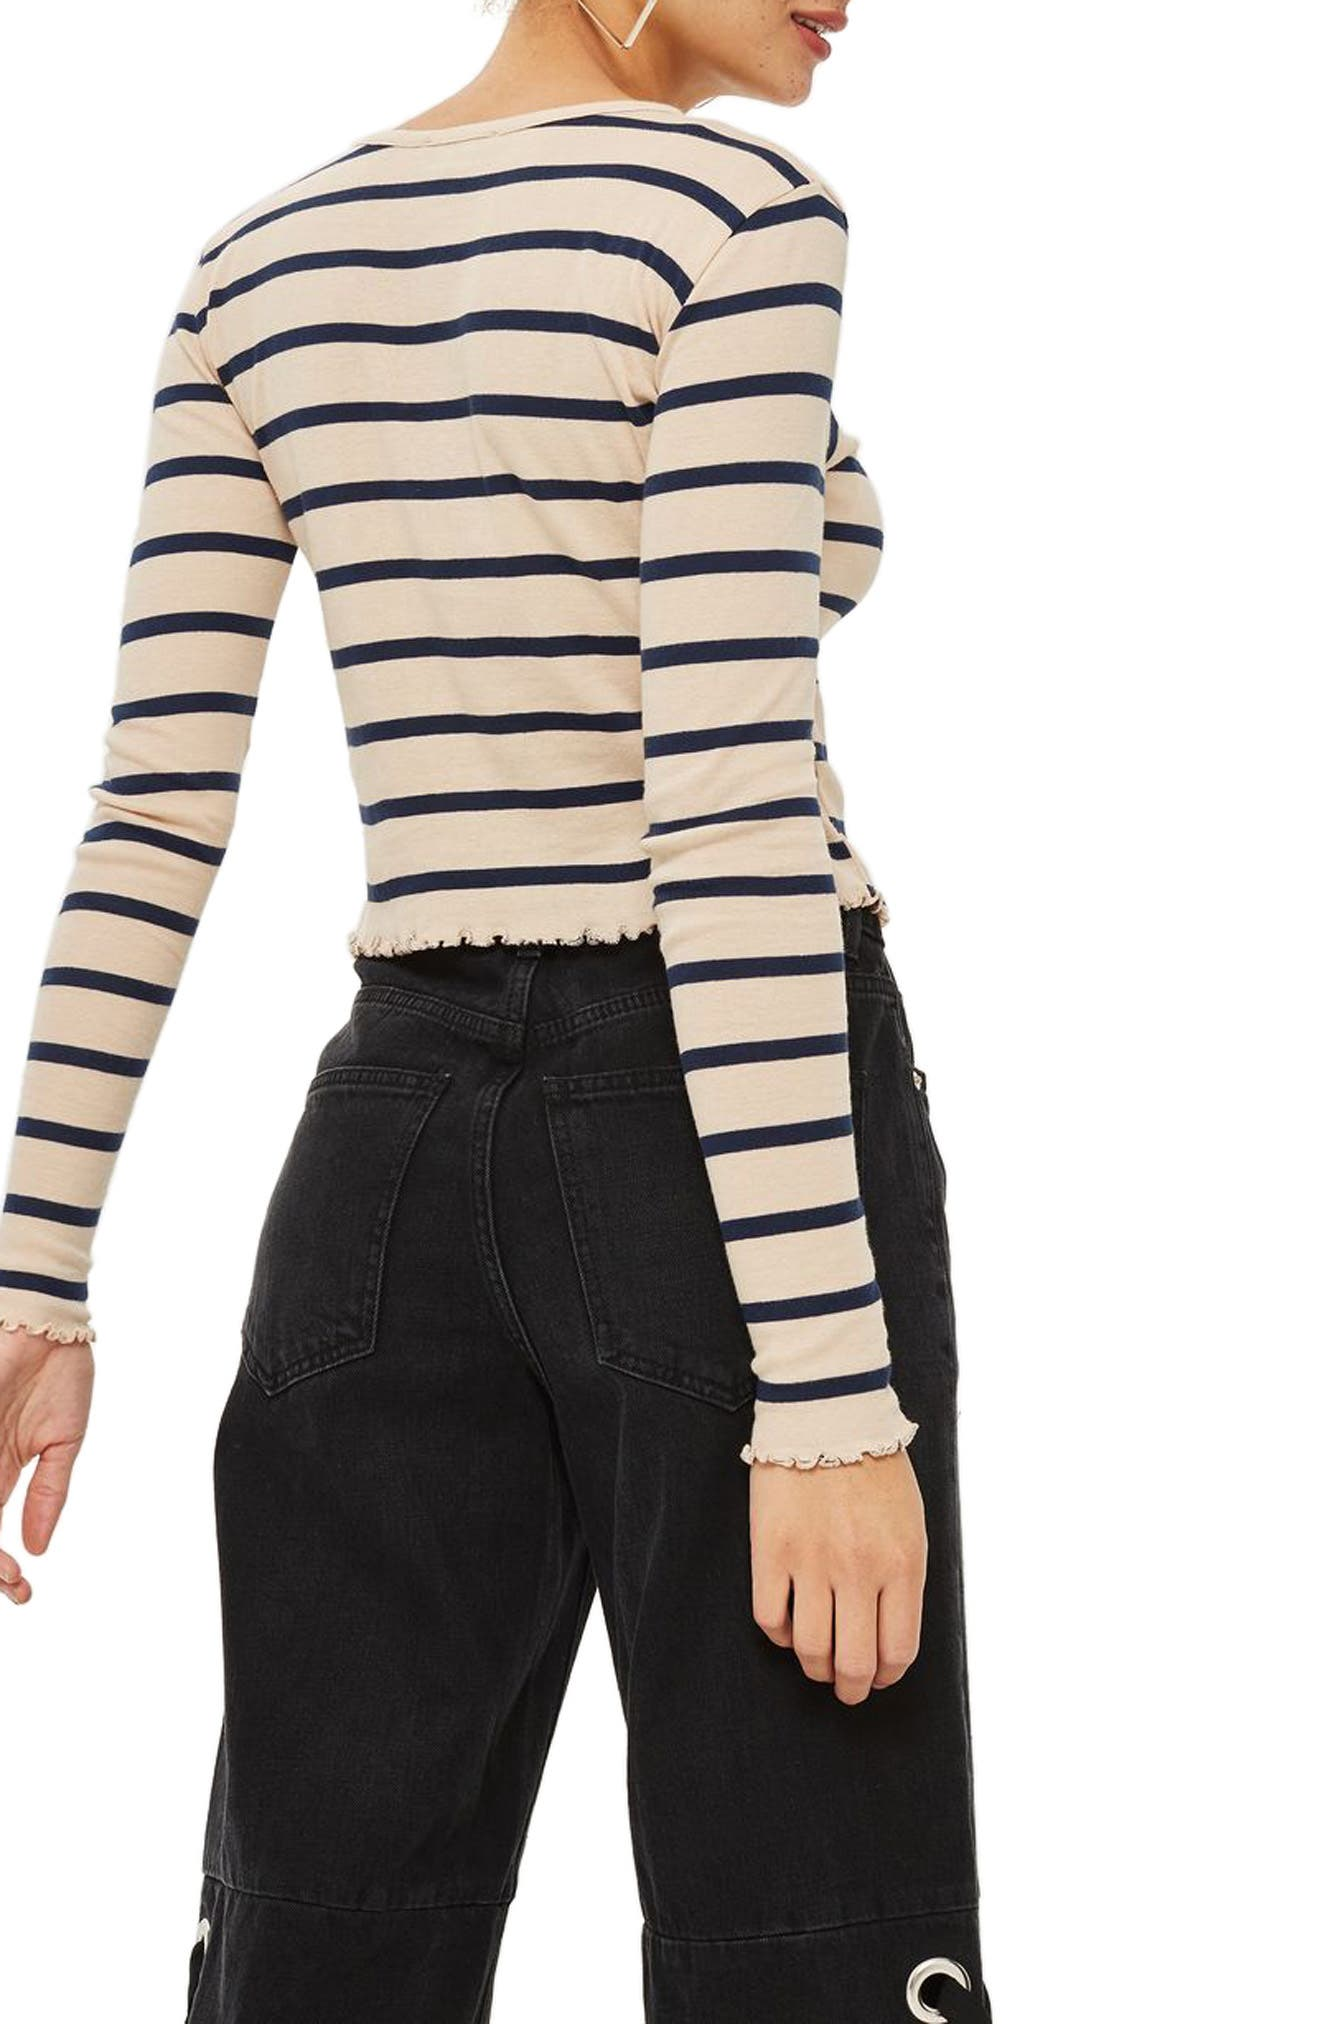 Petite Stripe Lettuce Trim T-Shirt,                             Alternate thumbnail 2, color,                             251